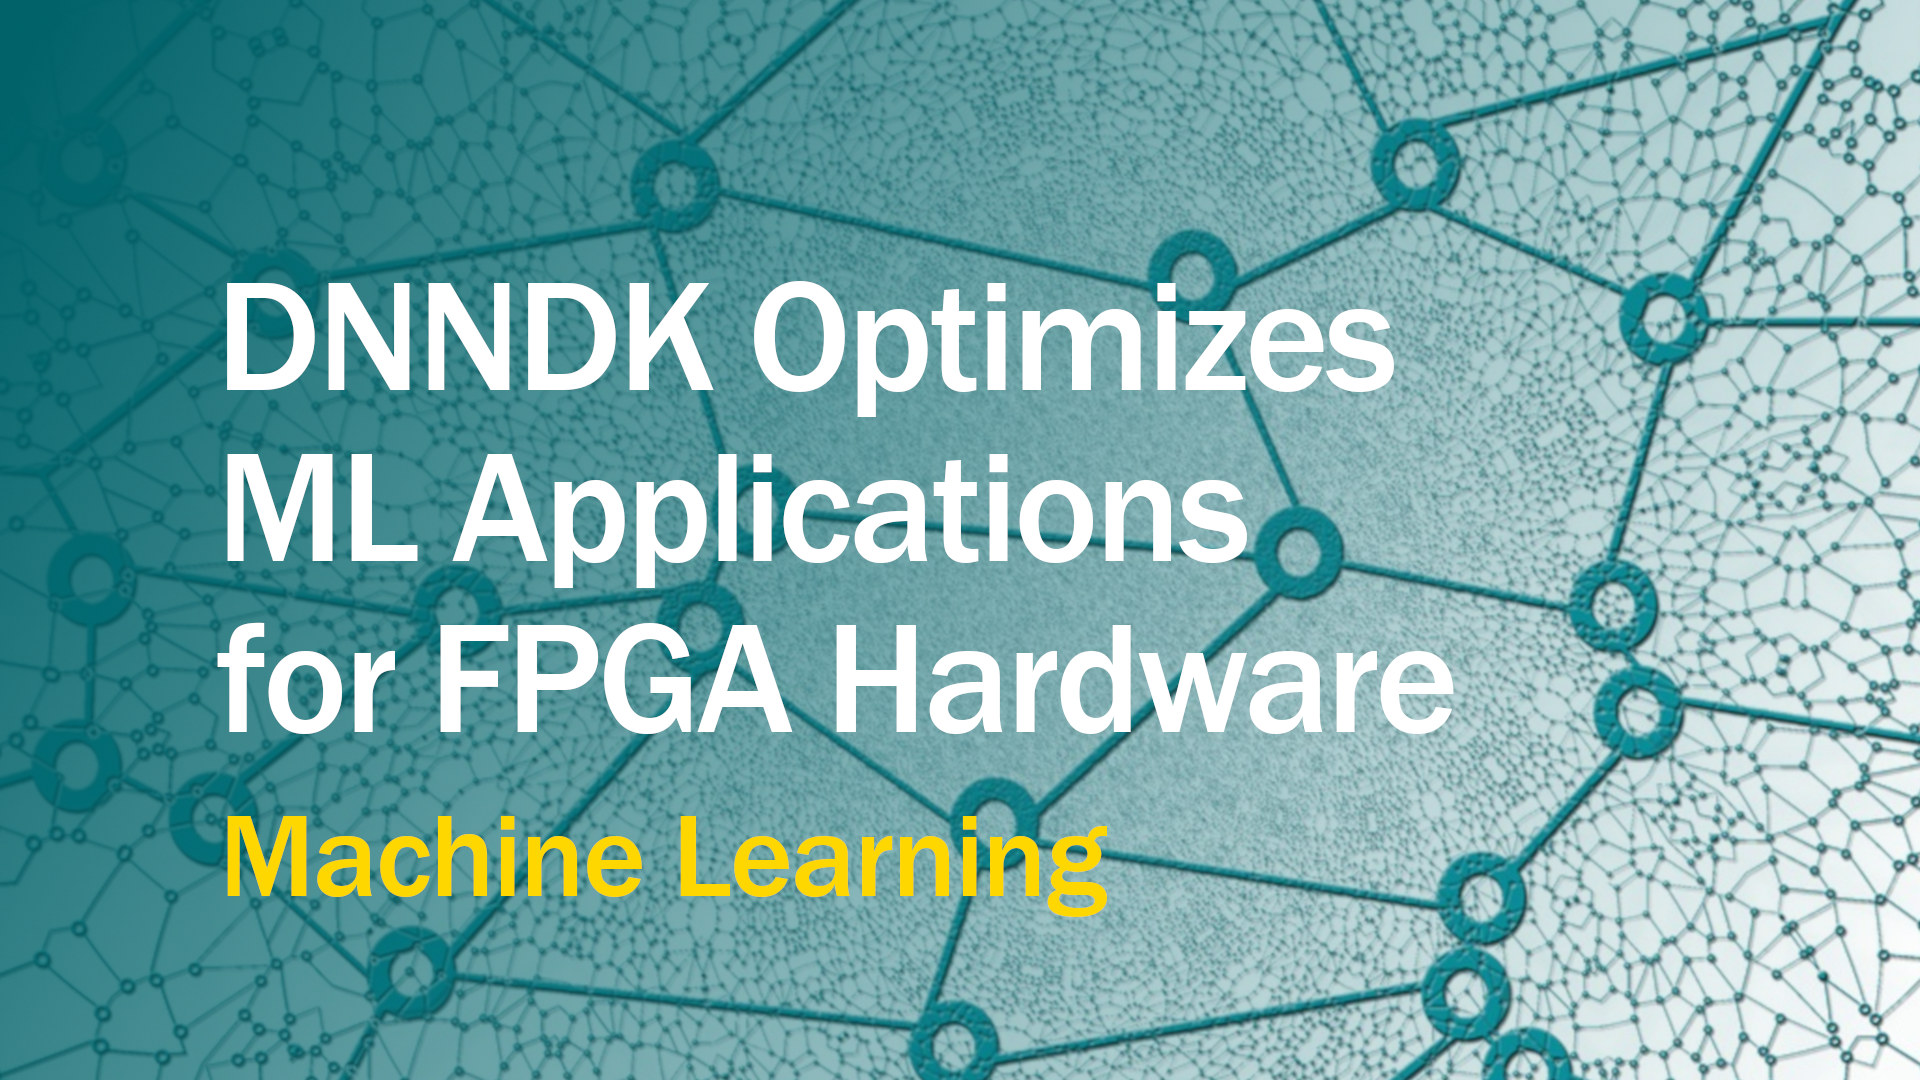 Machine Learning Systems Made More Accessible with Xilinx DNNDK